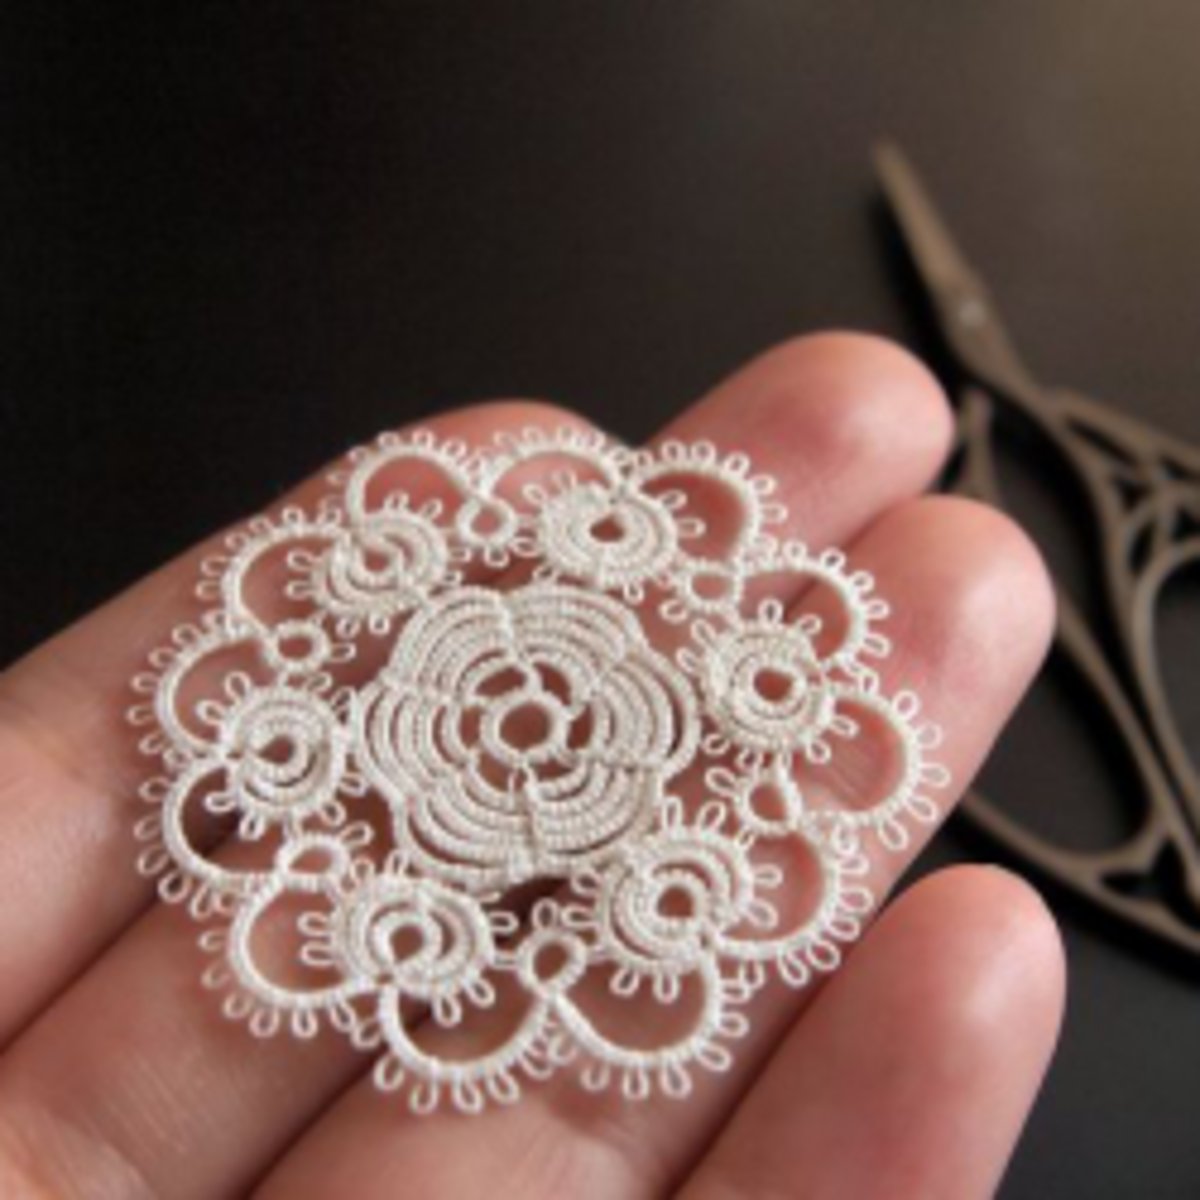 ★ How to Tat | Tatting Craft Tutorials and Projects ★